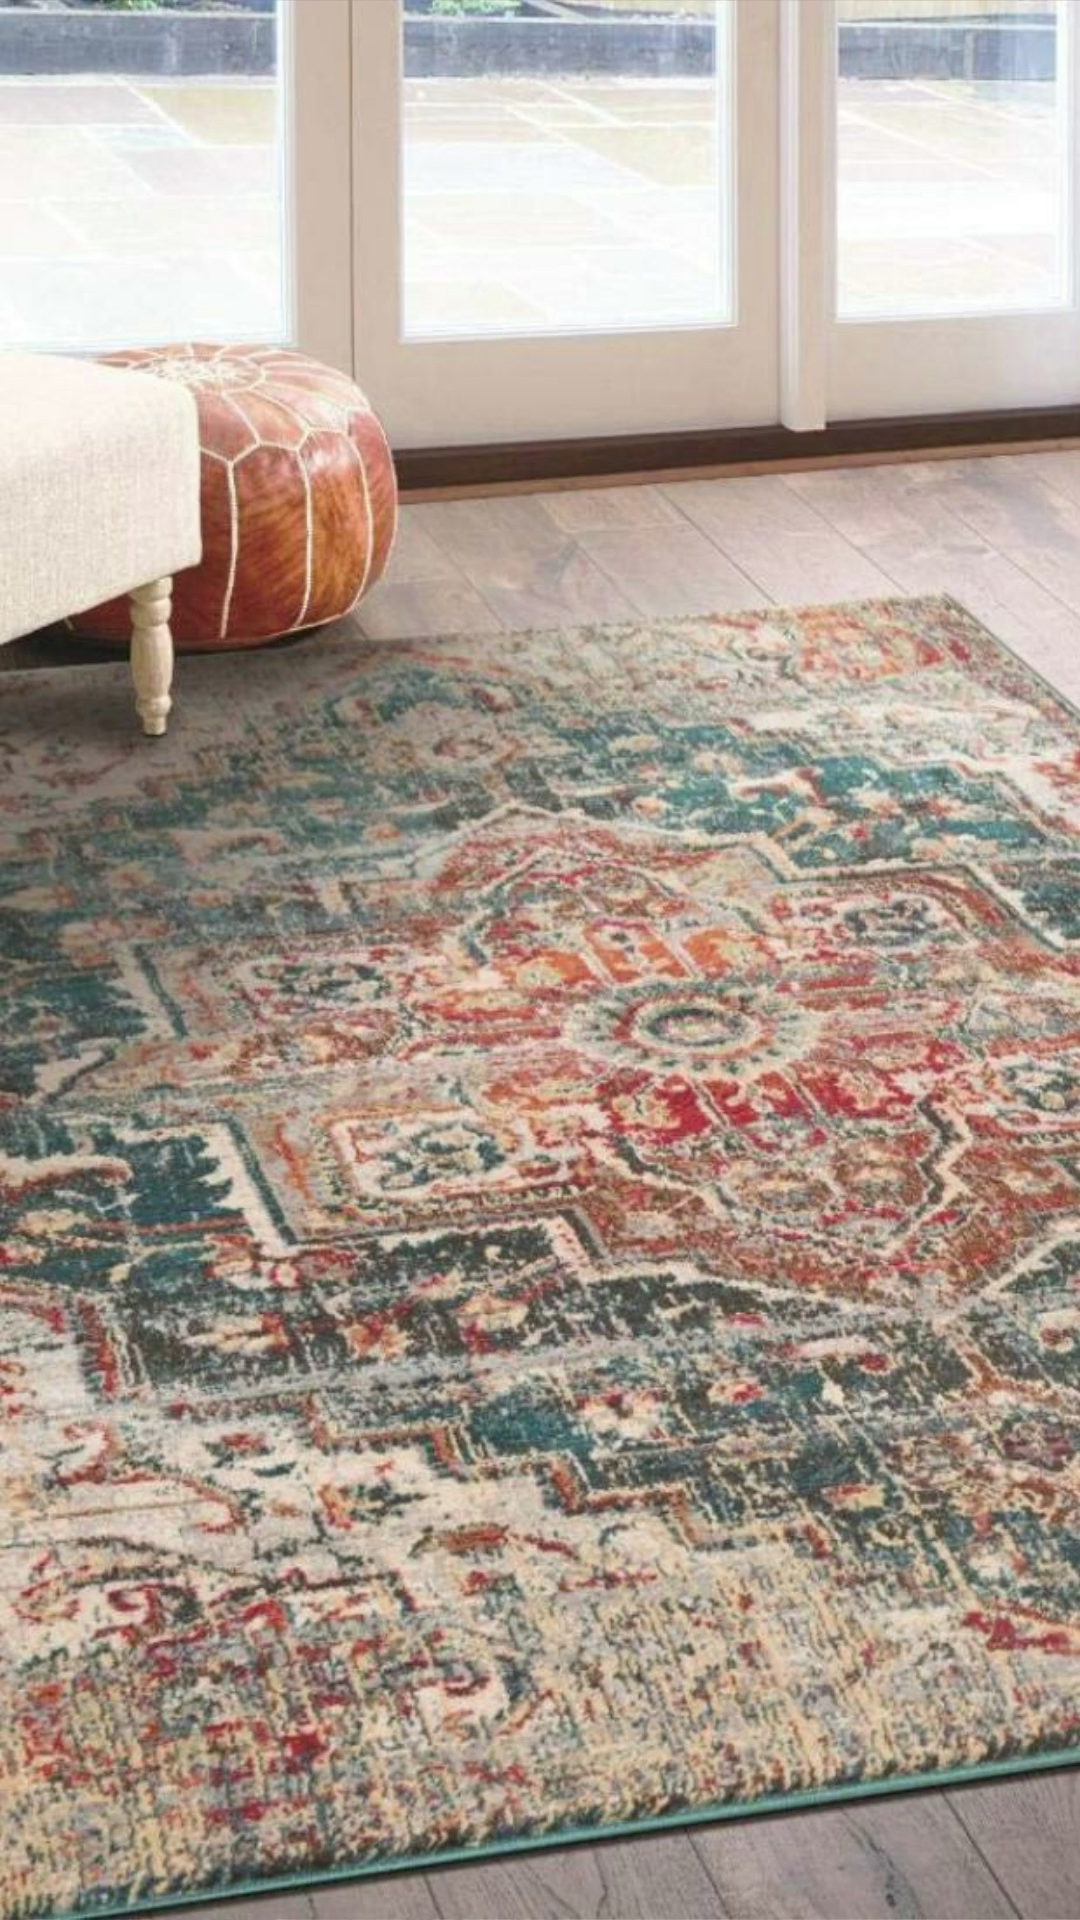 Oriental Area Rugs In Living Room Decorating Ideas Family Great Room Bedroom Carpet Decor Ideas In 2020 Rugs In Living Room Oriental Area Rugs Carpet Decor